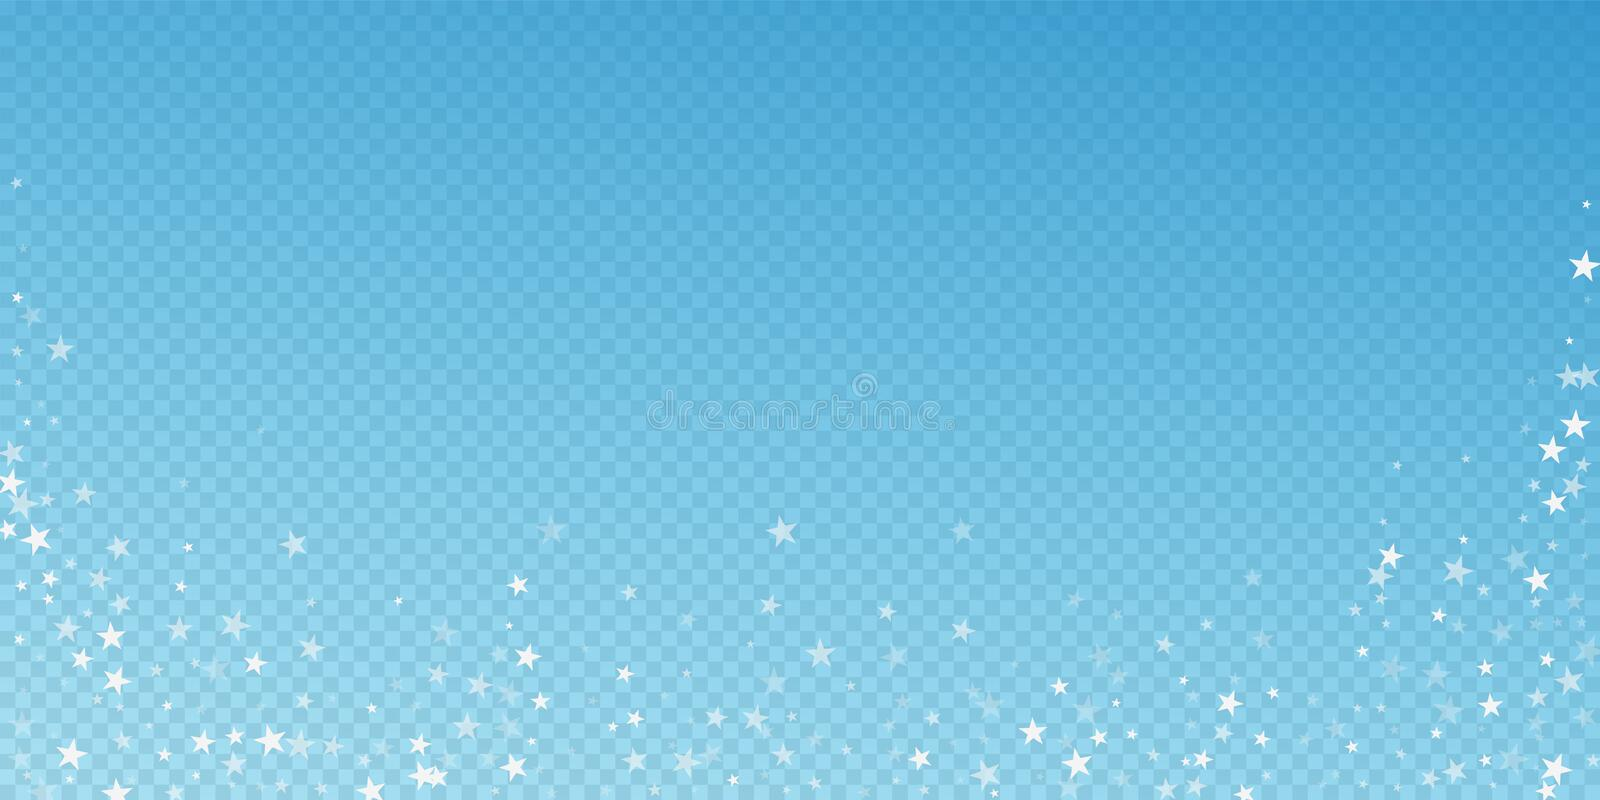 Random falling stars Christmas background. Subtle. Flying snow flakes and stars on blue transparent background. Authentic winter silver snowflake overlay stock illustration